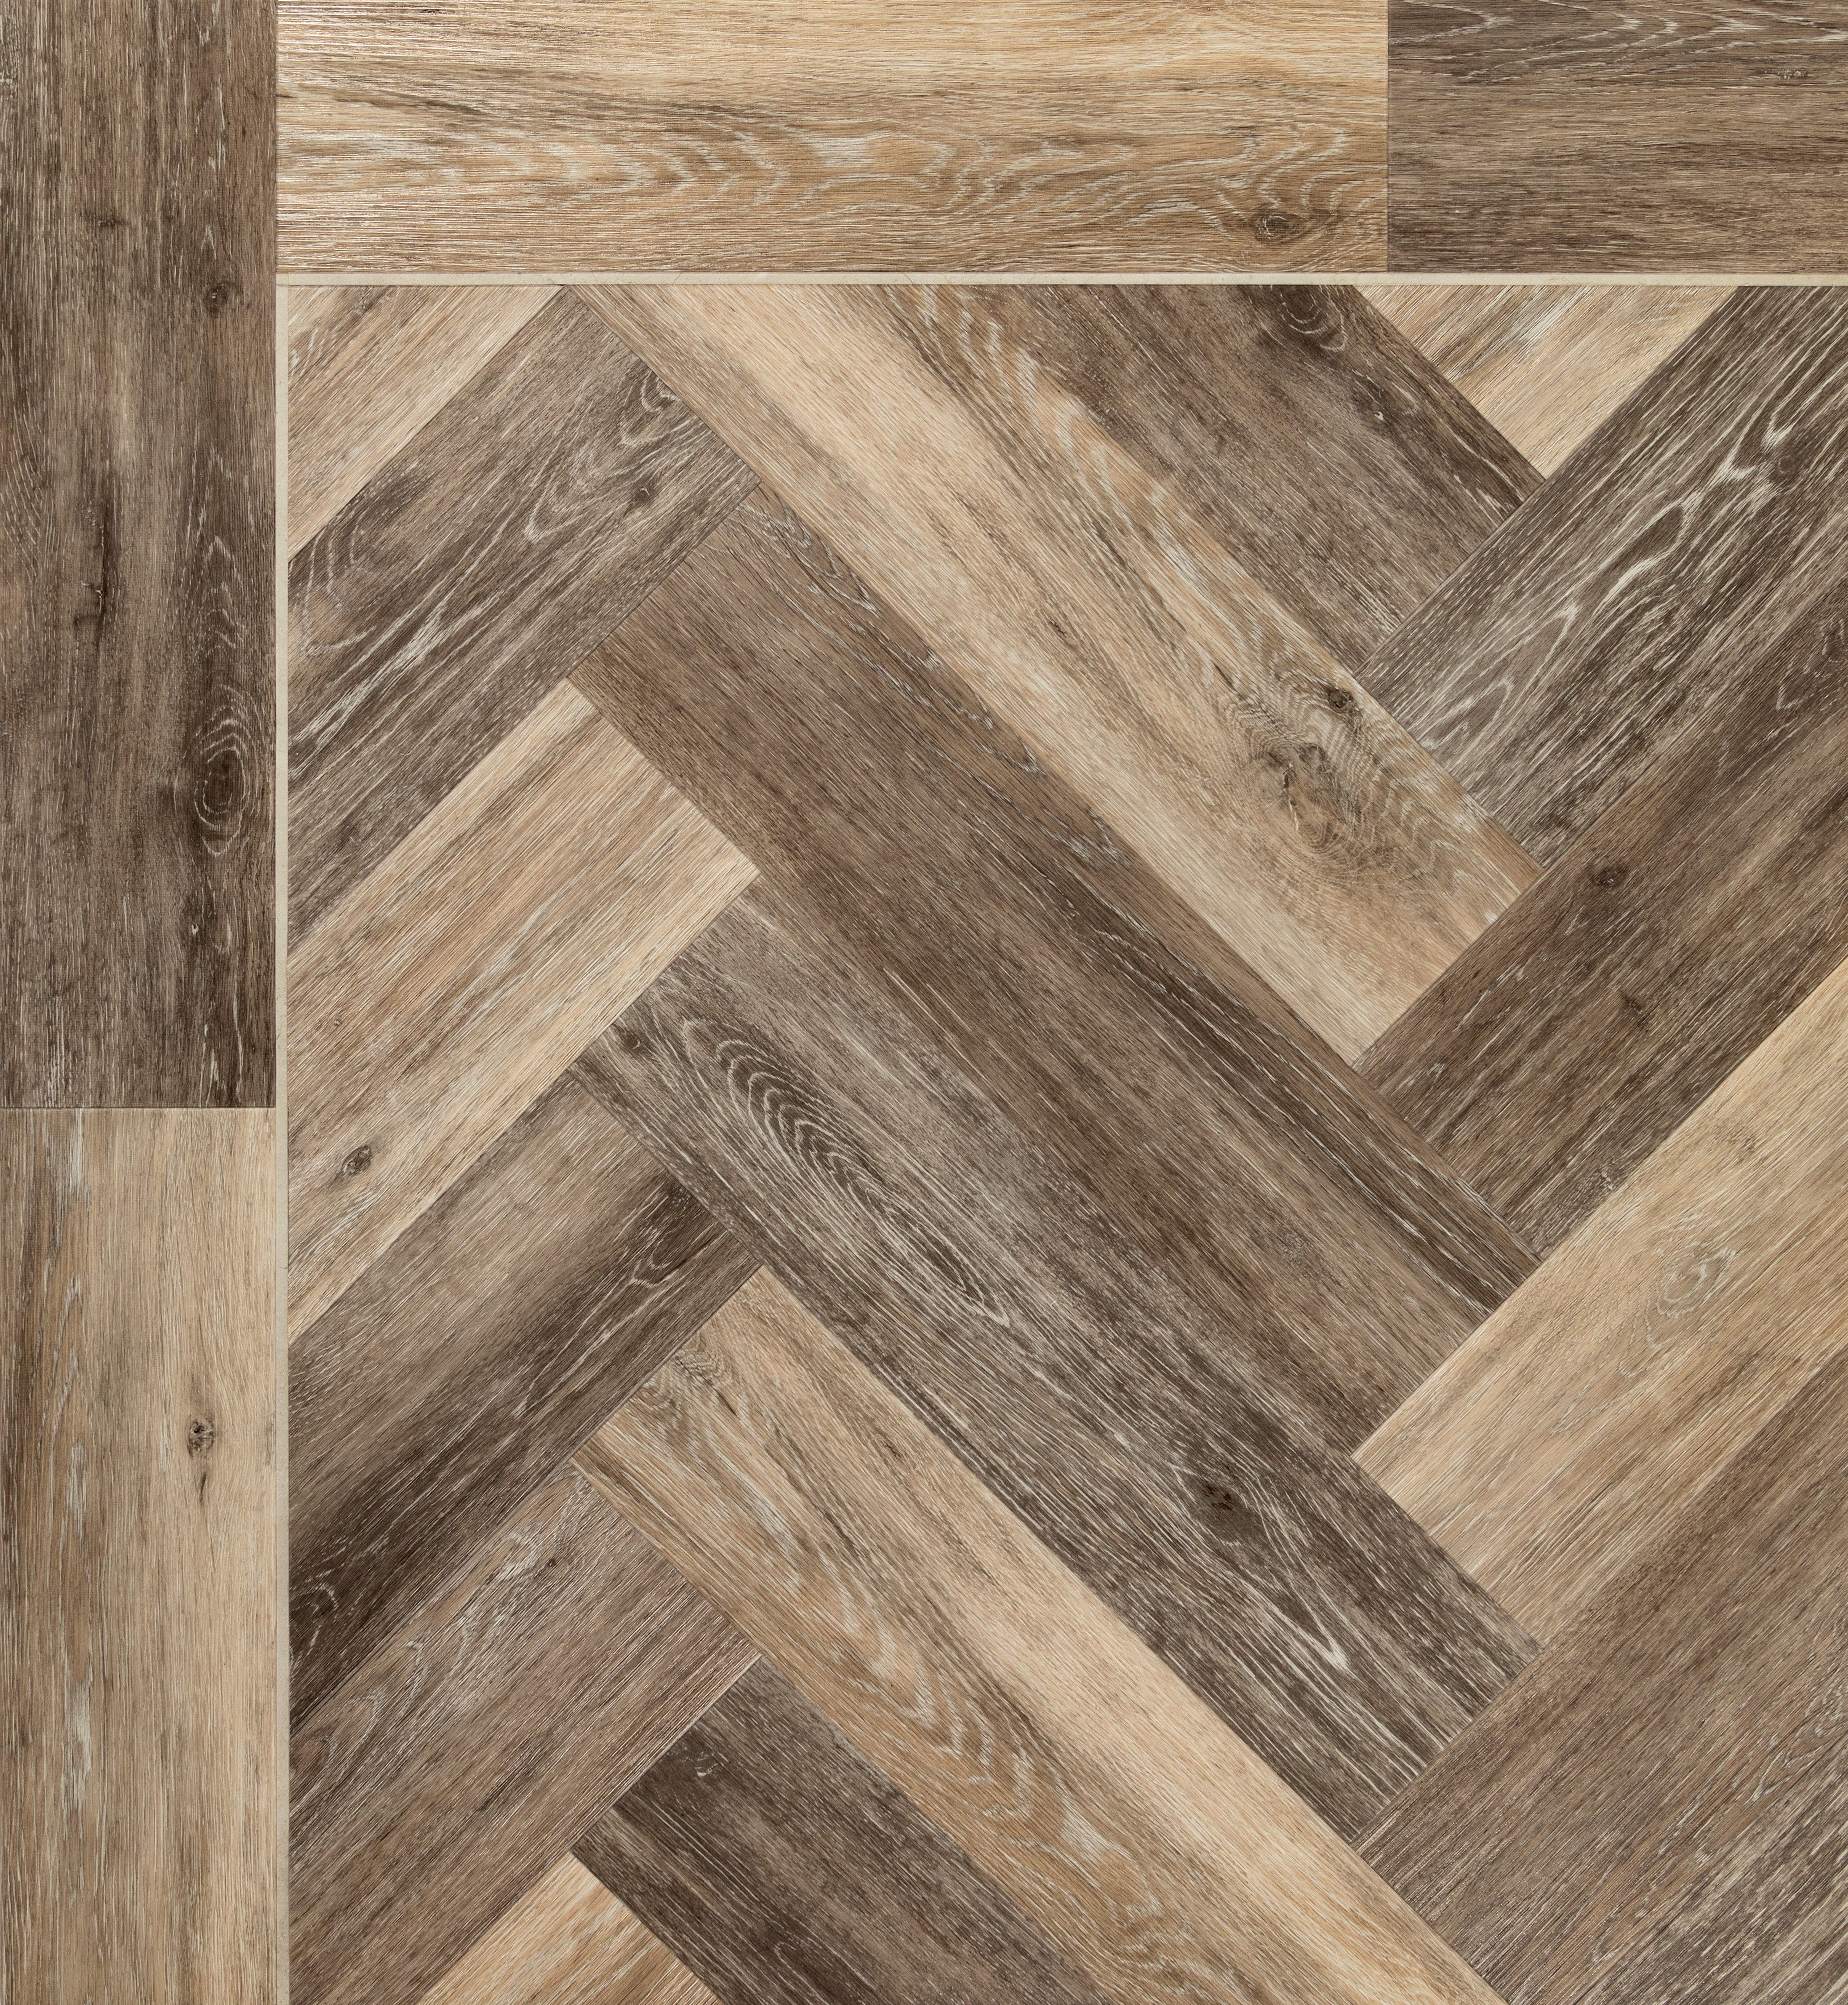 Random Grey Herringbone Ambiance Luxury Vinyl Tiles Vinyl Flooring Luxury Vinyl Tile Luxury Vinyl